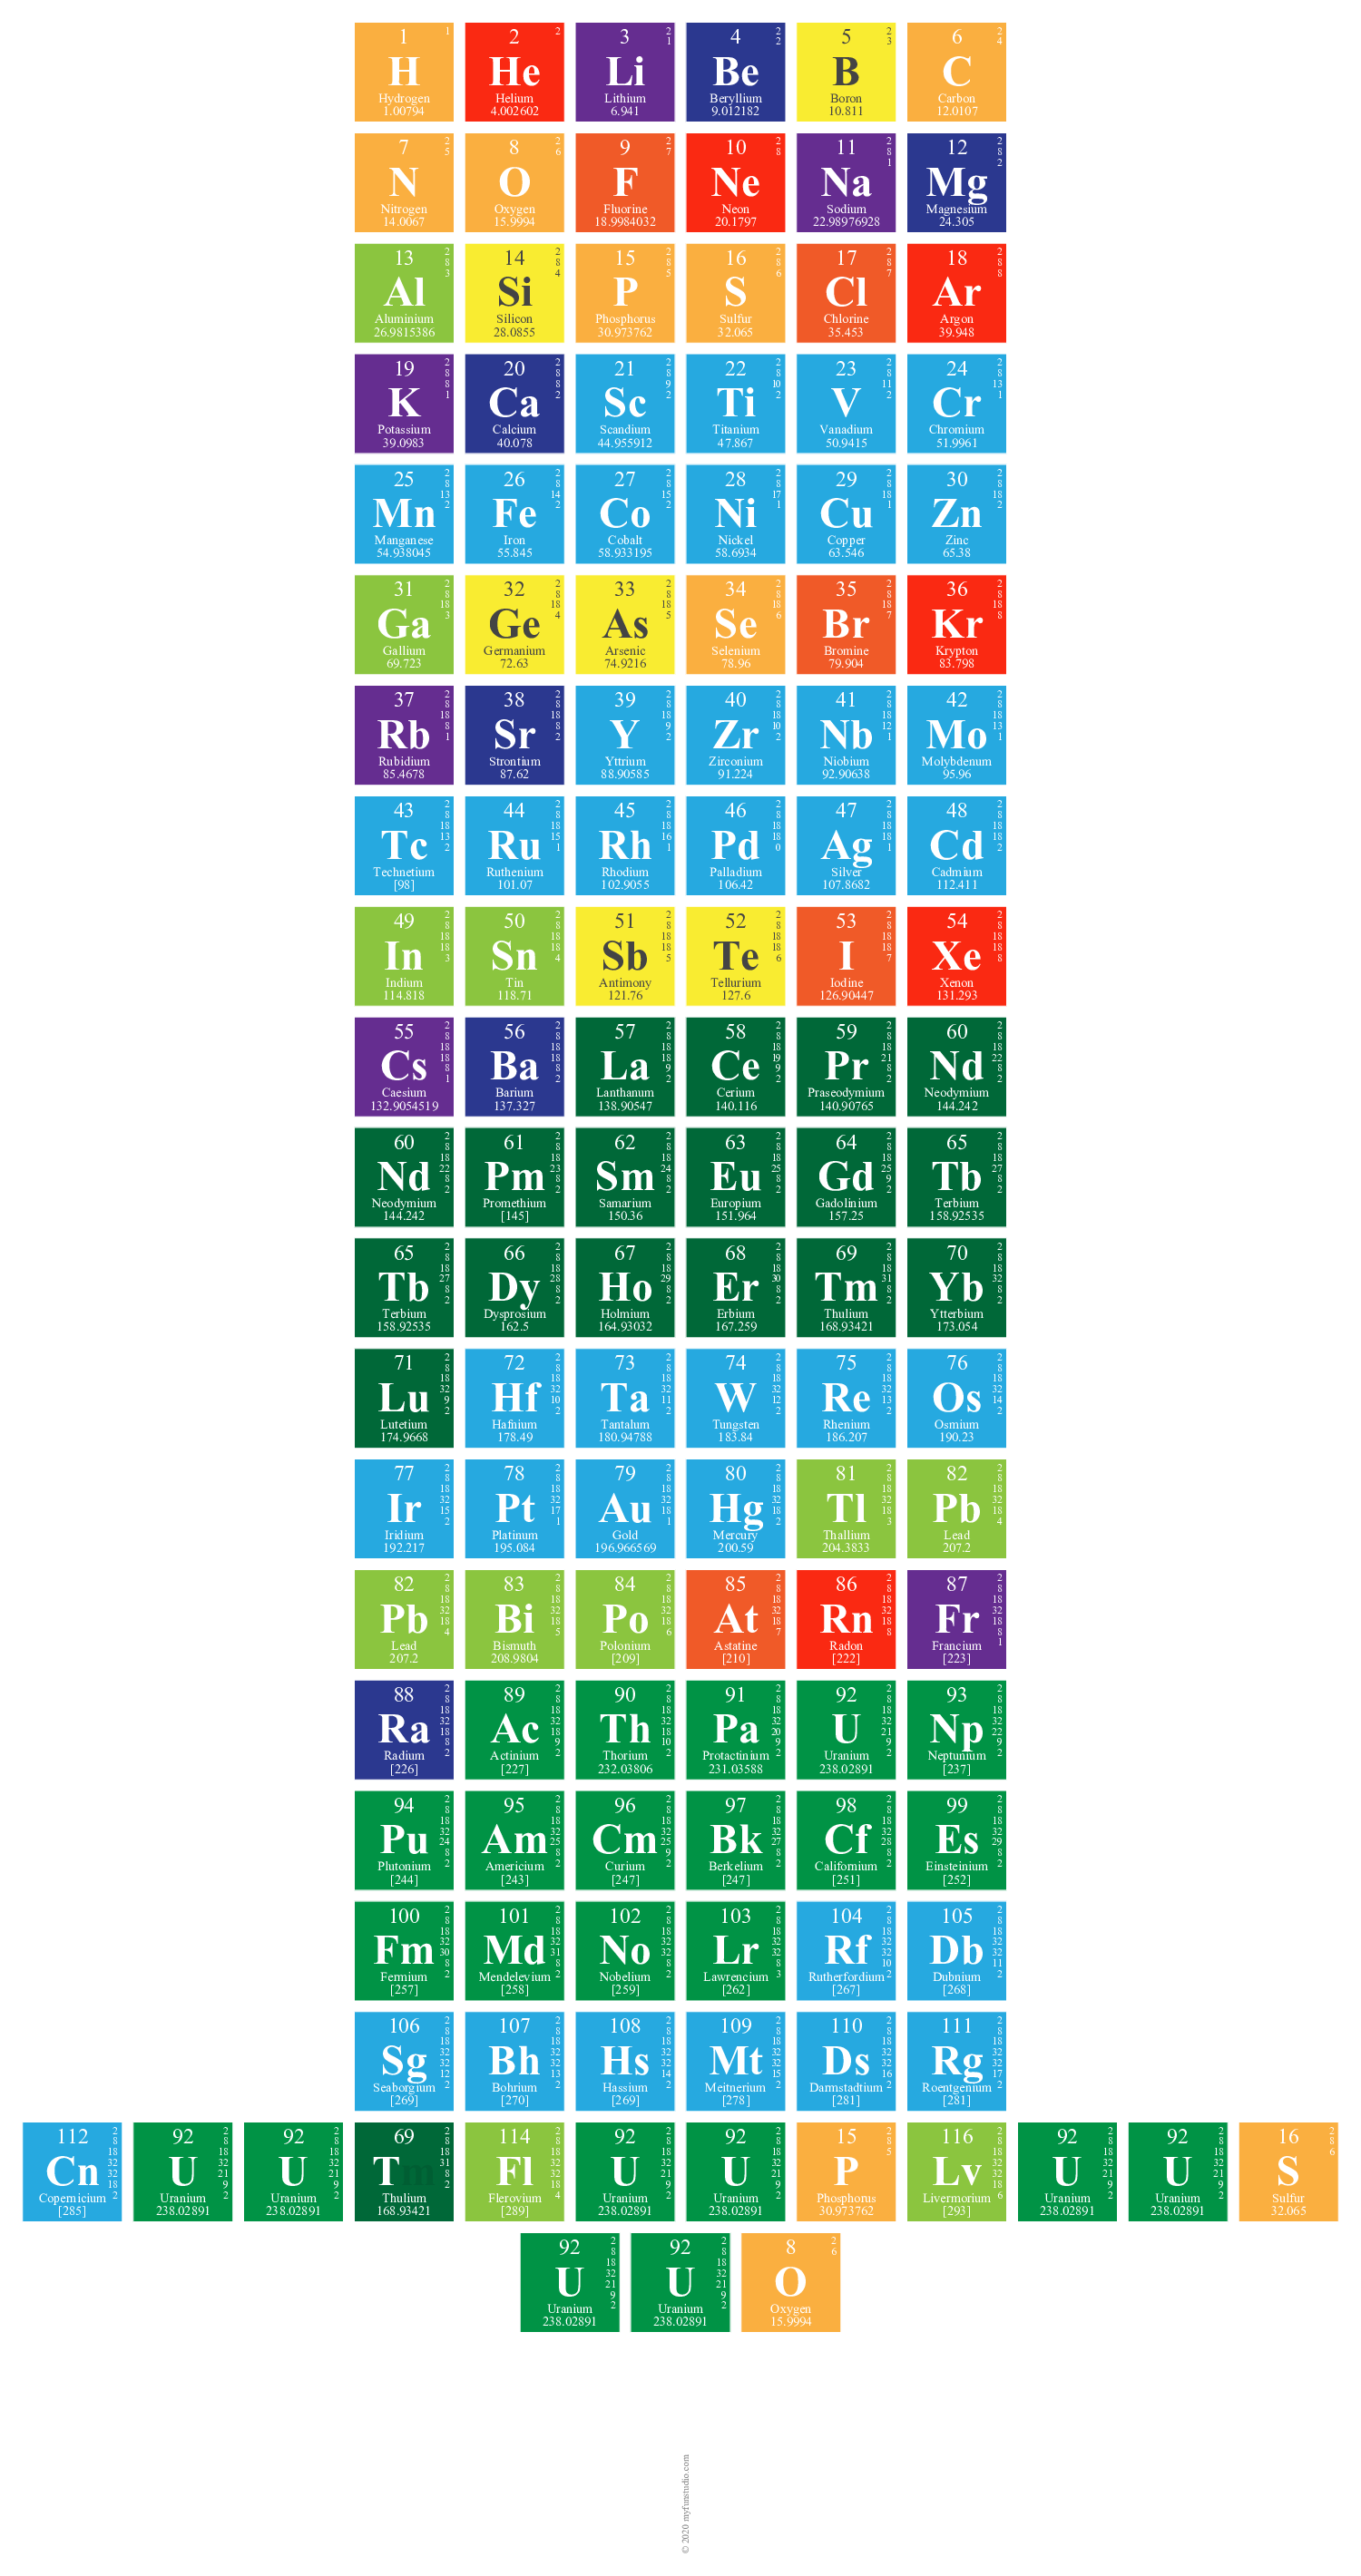 39 1 118 elements 39 elements of the periodic table writer for 118 periodic table